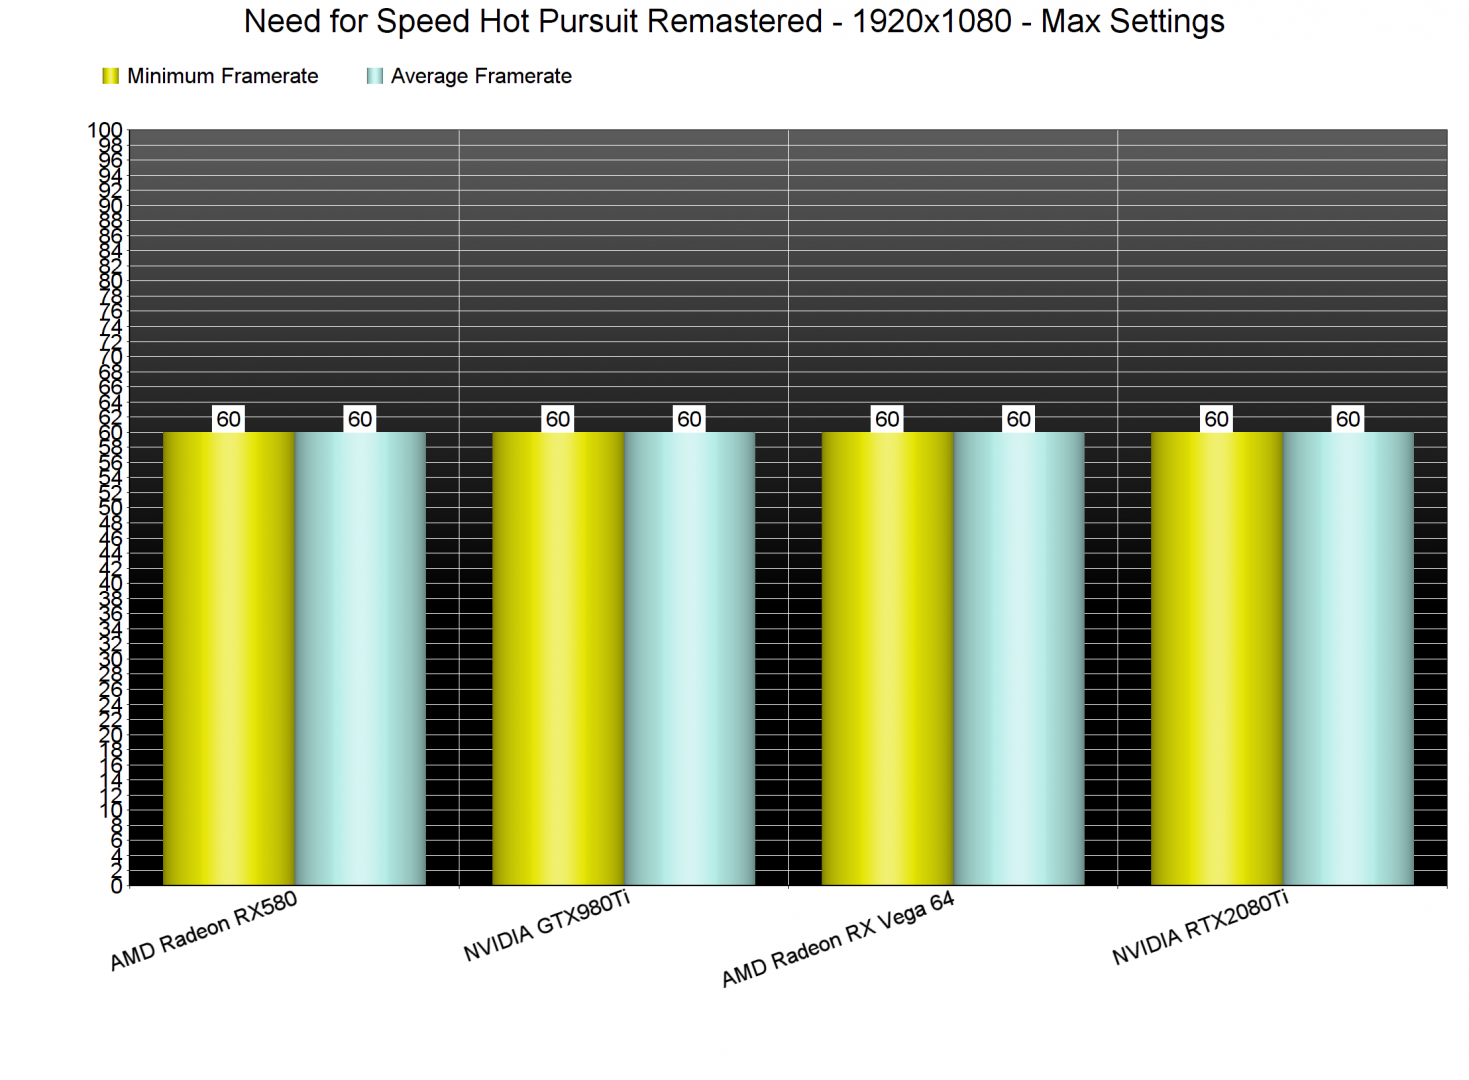 Need for Speed Hot Pursuit Remastered GPU benchmarks-1